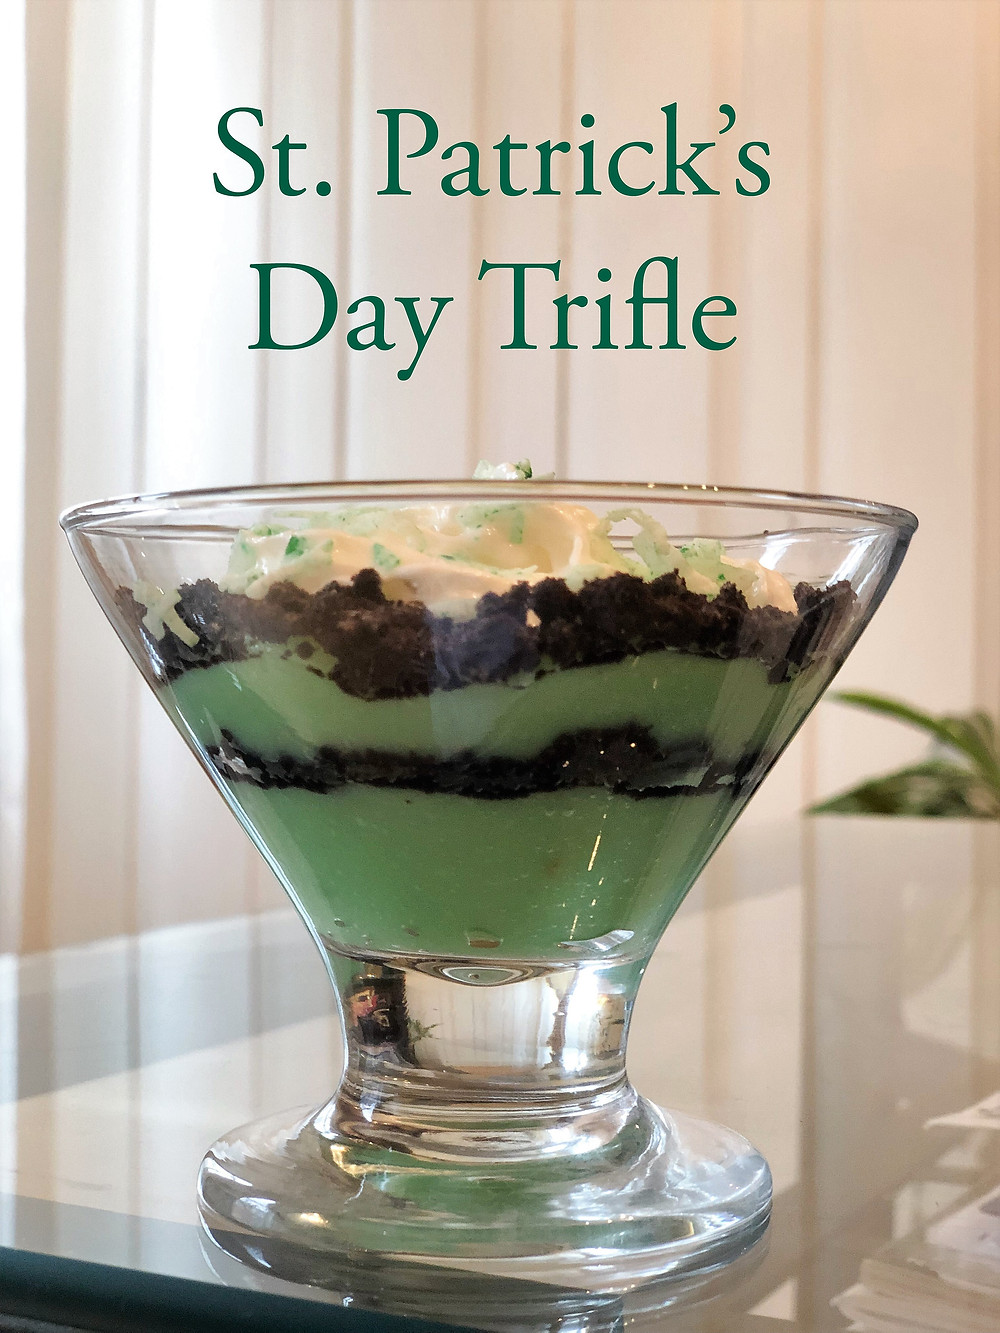 St. Patrick's Day trifle with alternating layers of green pudding and Oreo crumbs, topped with green shredded coconut.